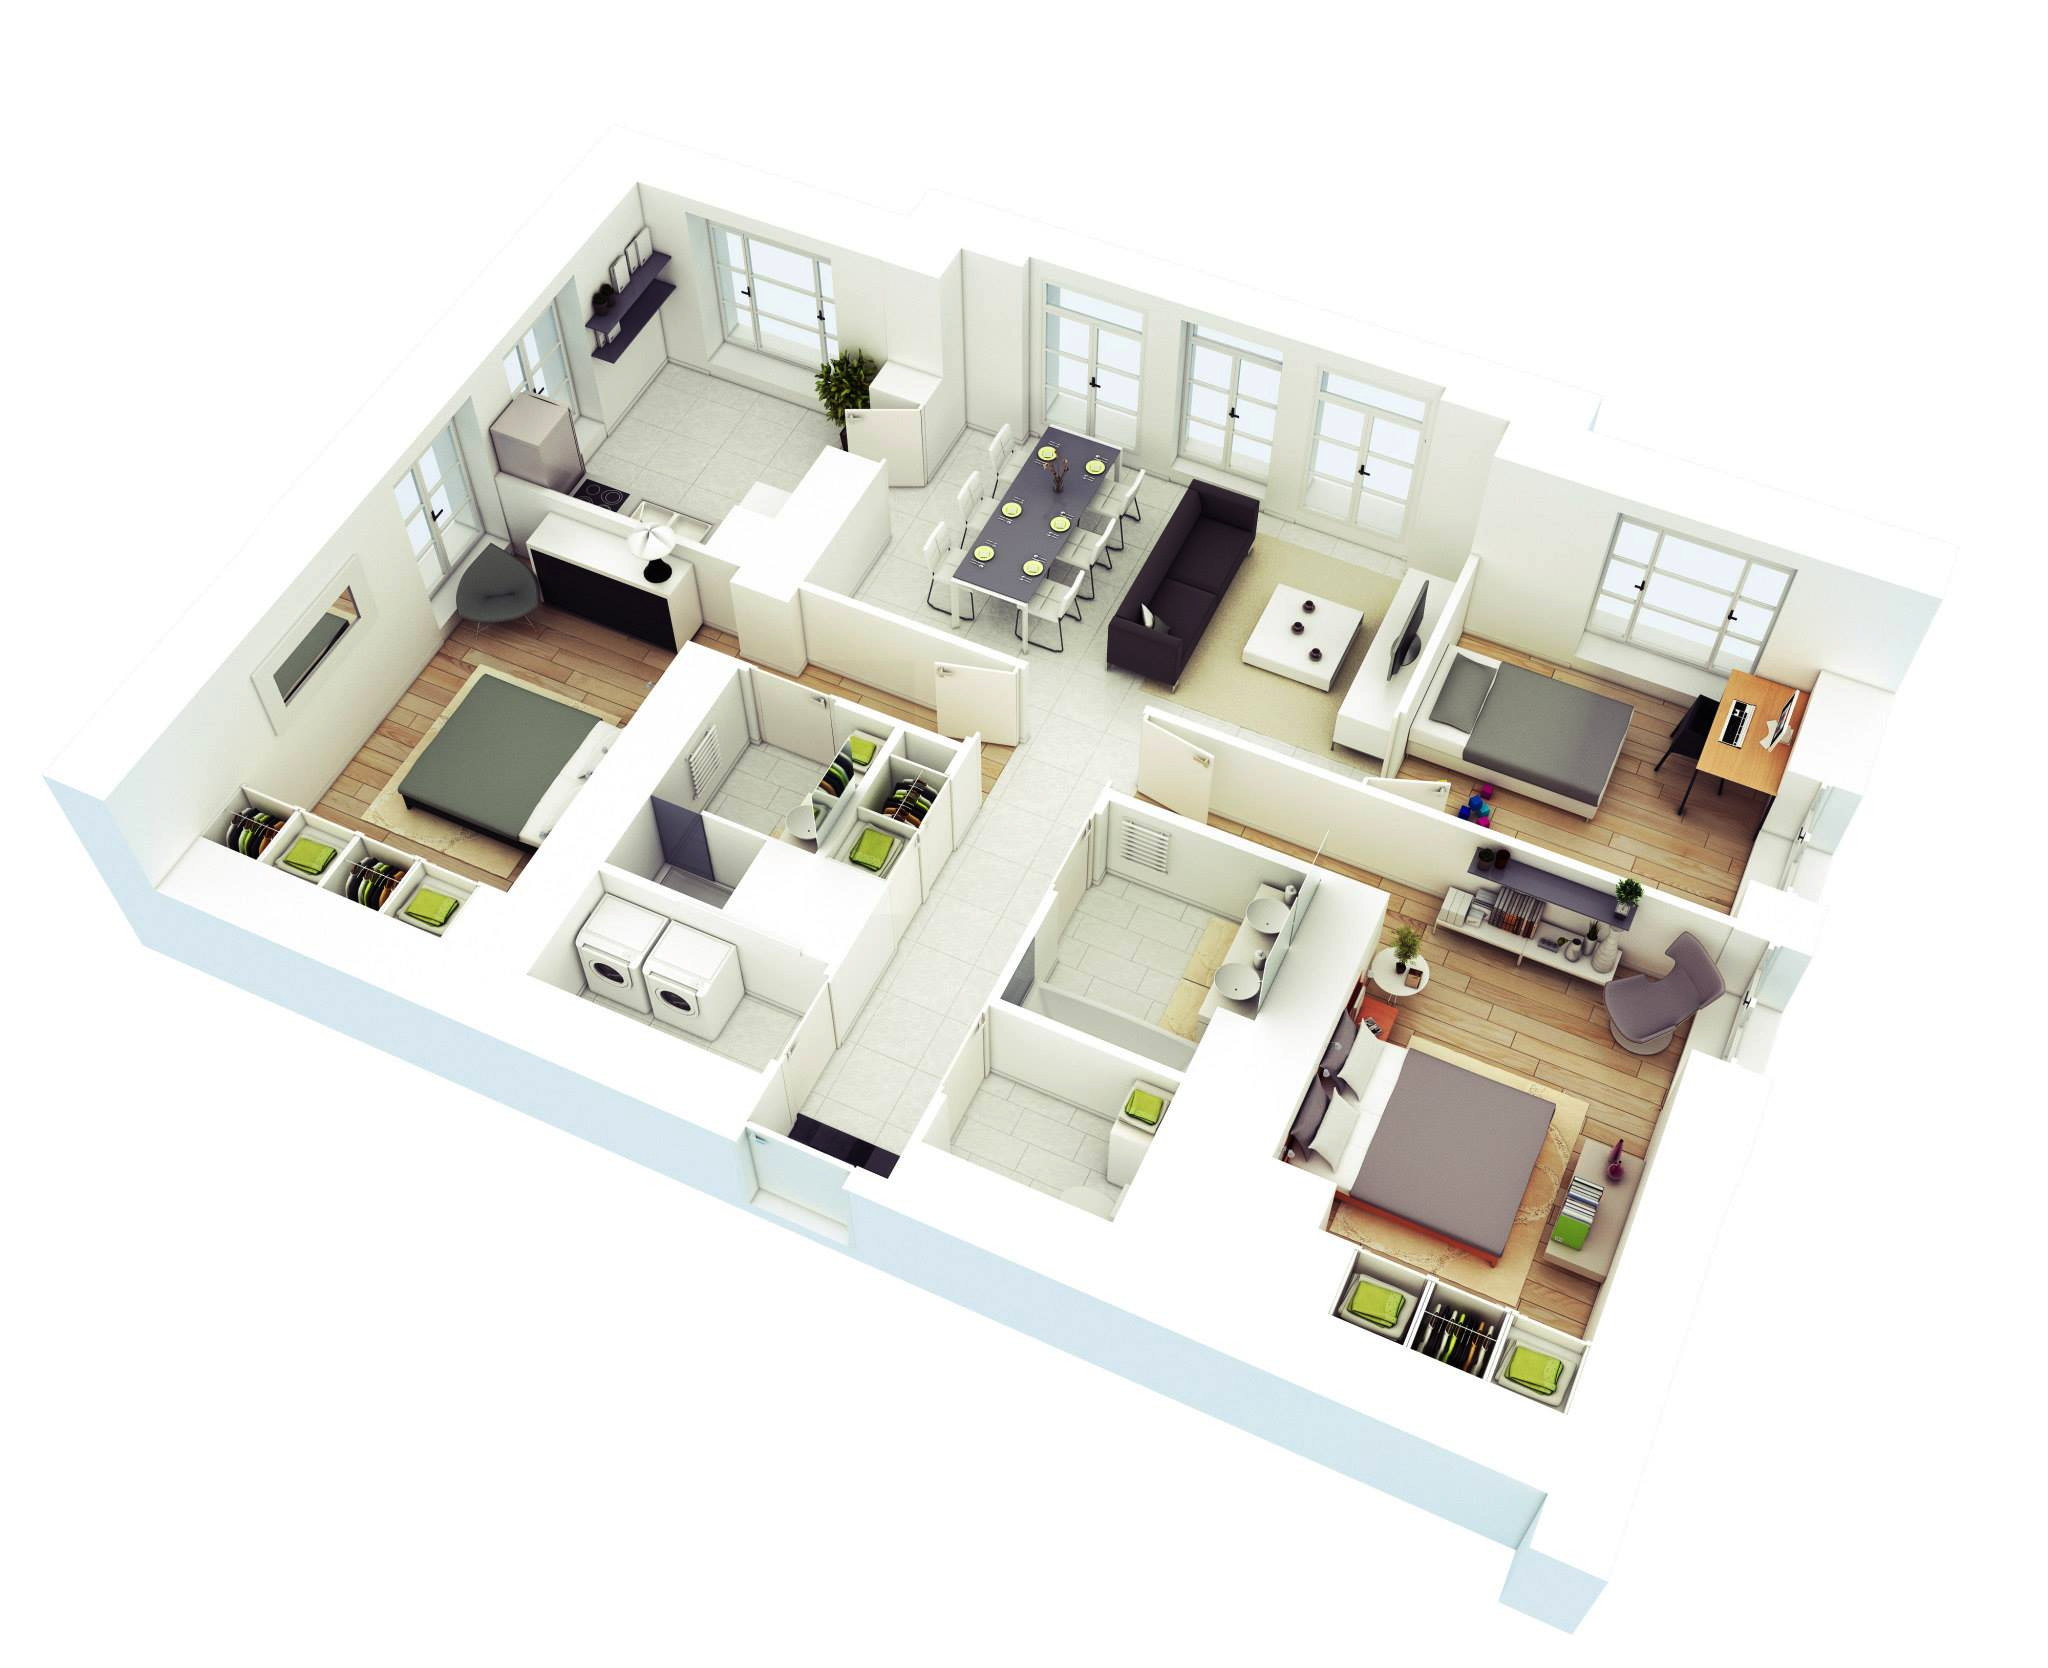 25 more 3 bedroom 3d floor plans On 4 bedroom 3d floor plan